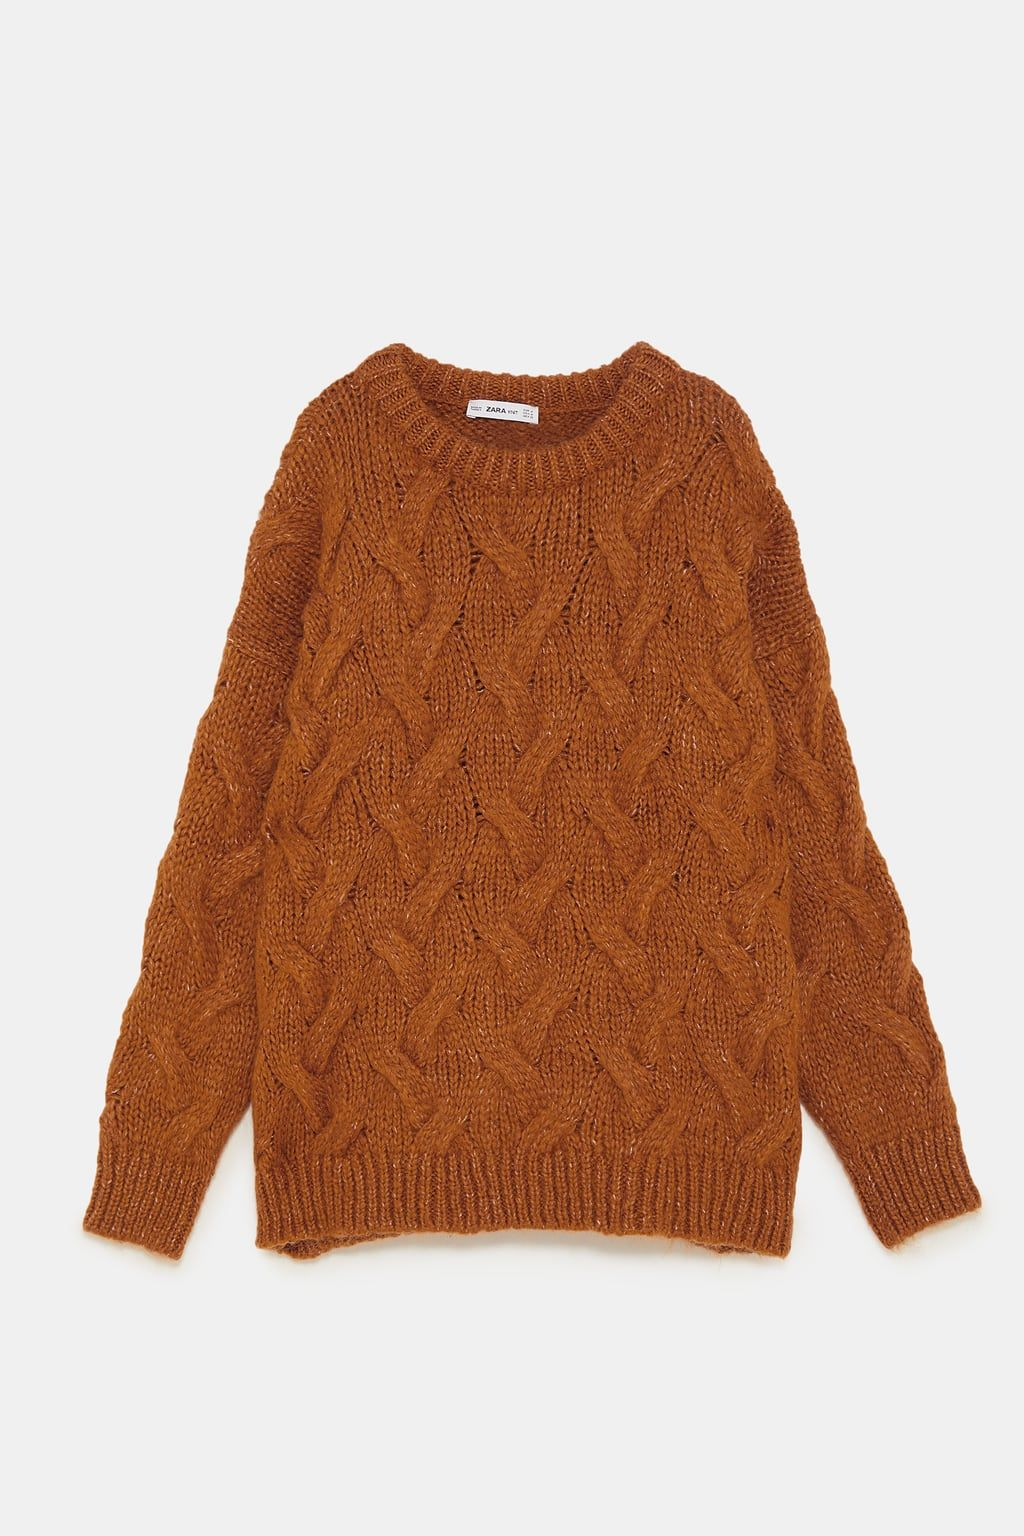 b4dac9636df6b3 Image 8 of CABLE KNIT SWEATER from Zara Fall Sweaters